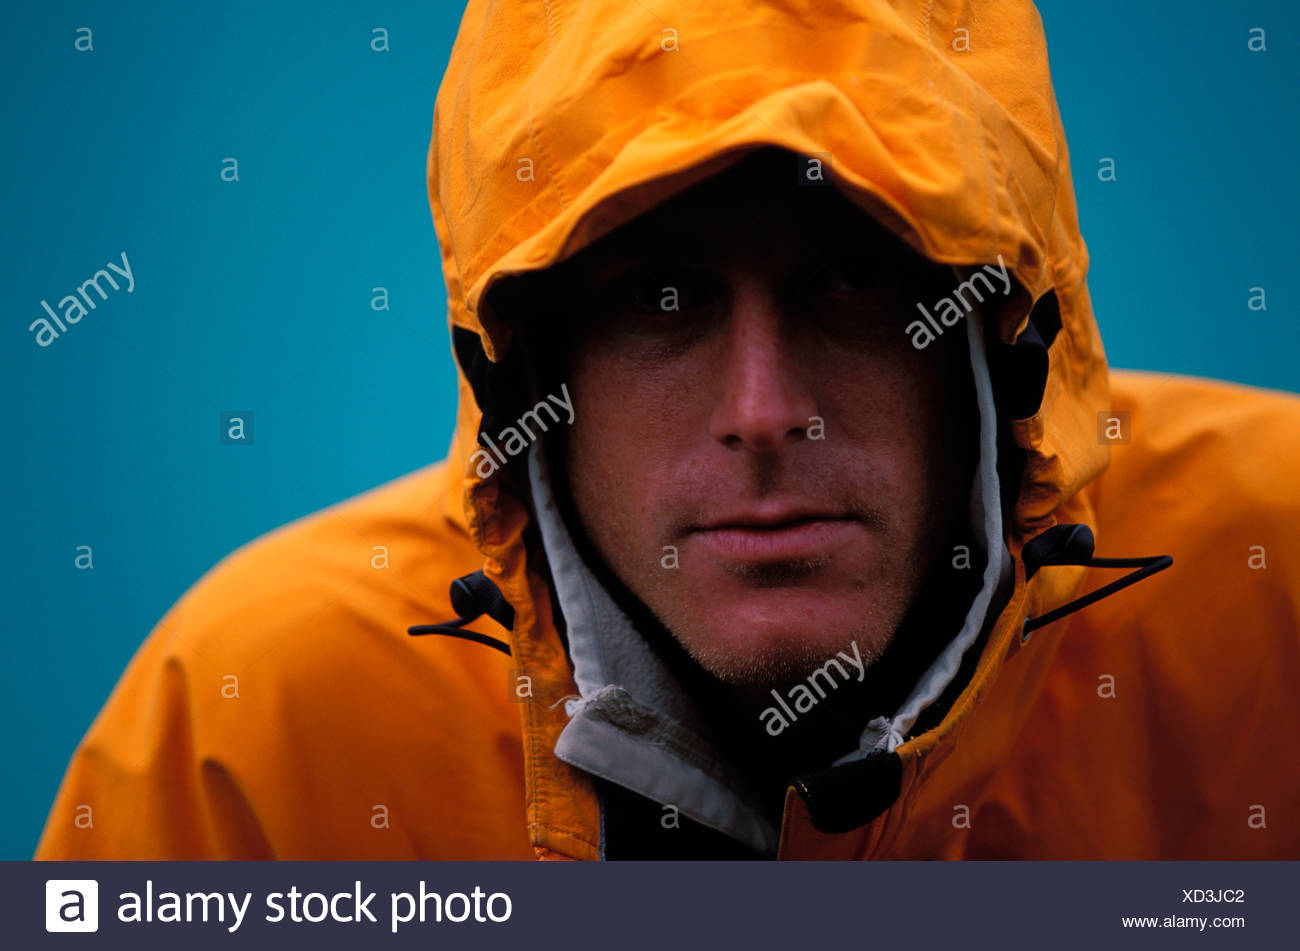 Headshot / portrait of a male climber with a yellow jacket and hood on. - Stock Image